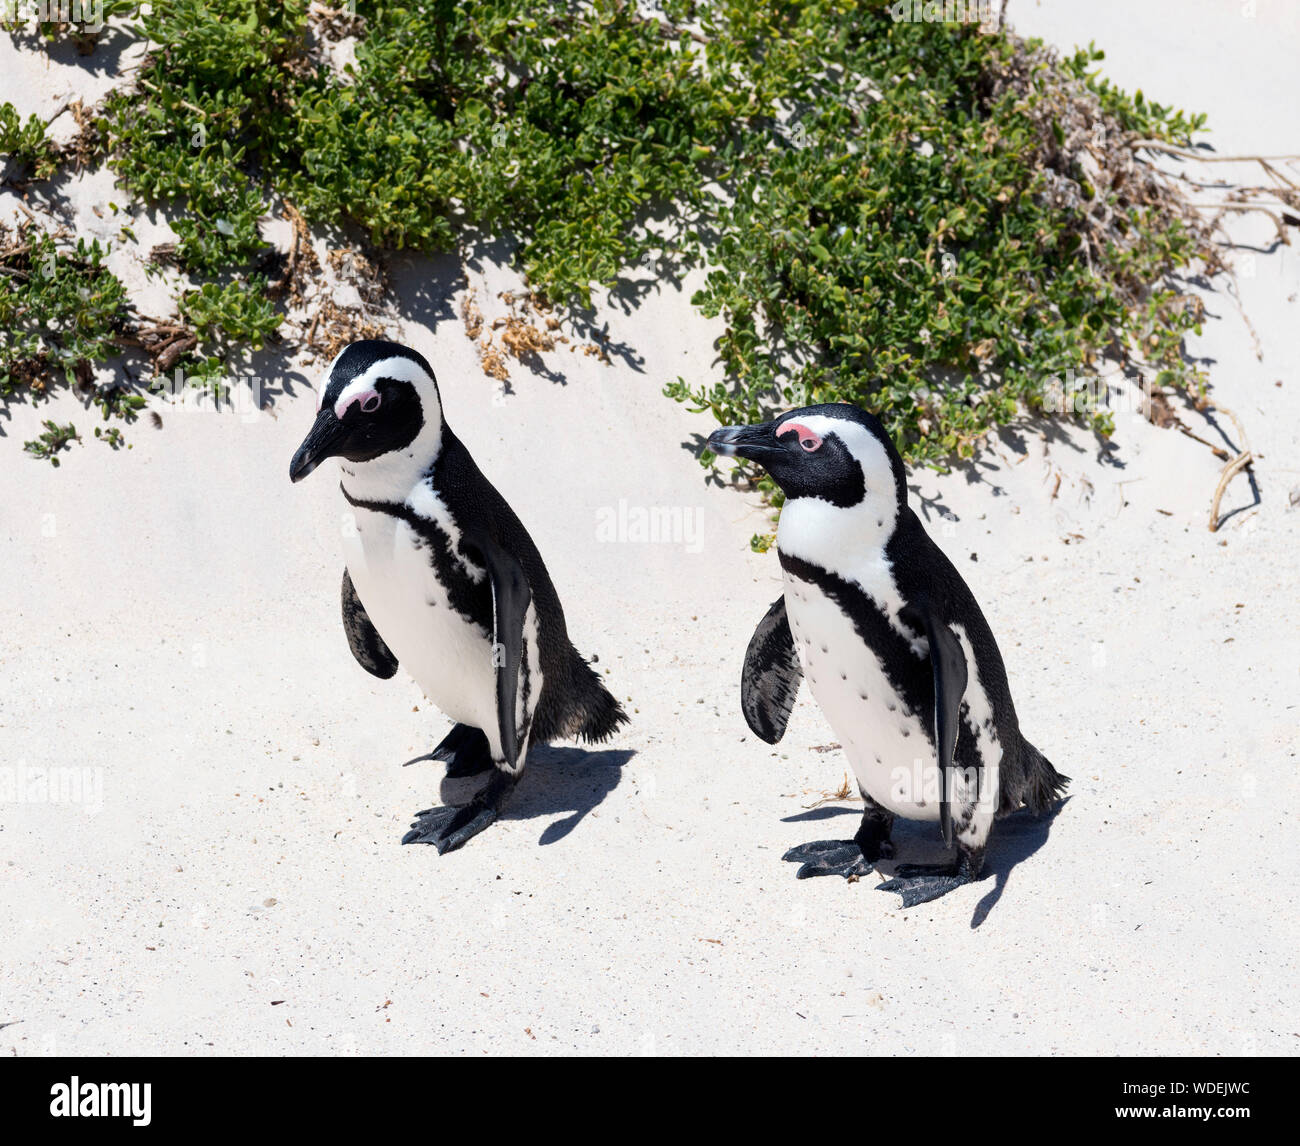 African Penguins (Spheniscus demersus) at Boulders Beach, Simon's Town, Cape Town, Western Cape, South Africa Stock Photo